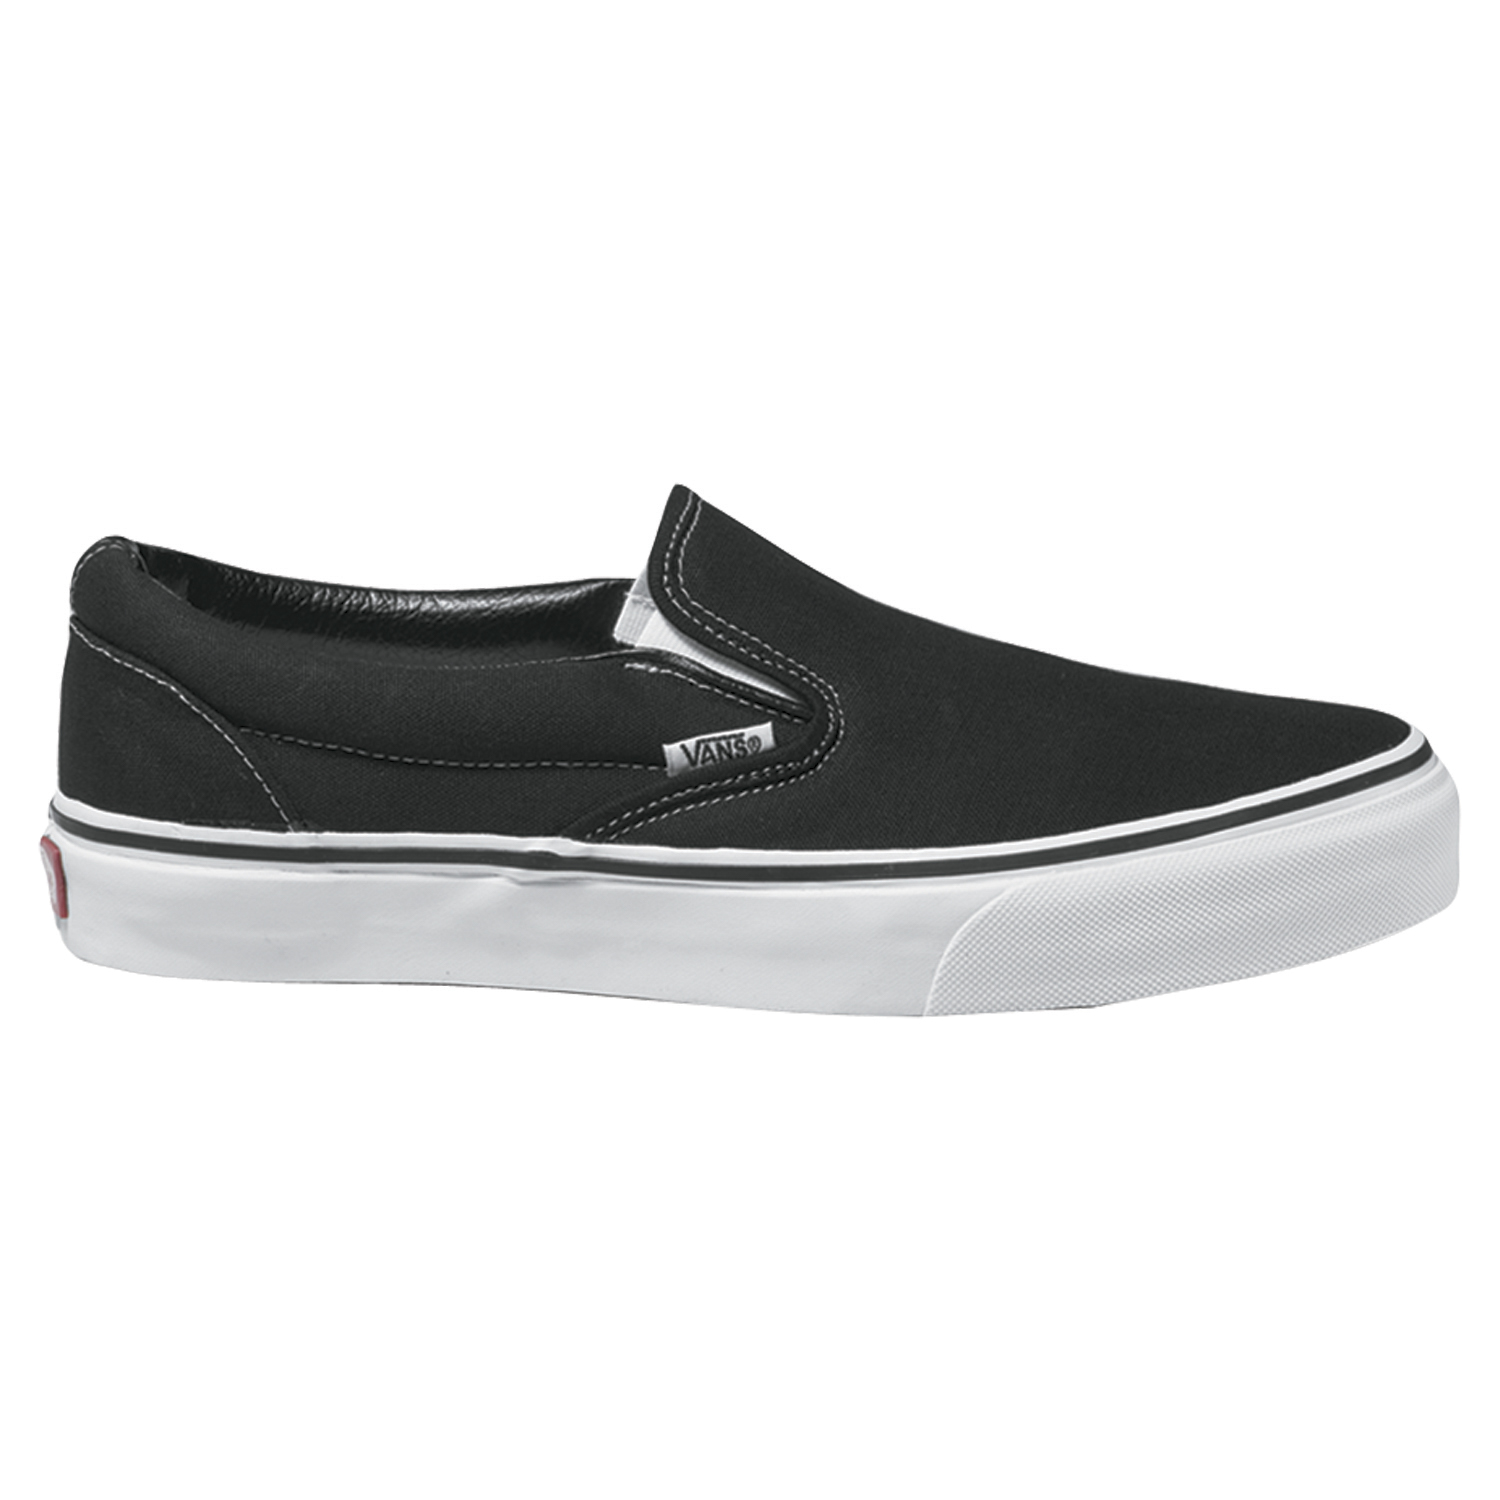 vans-classic-slip-on-black-white-99-90